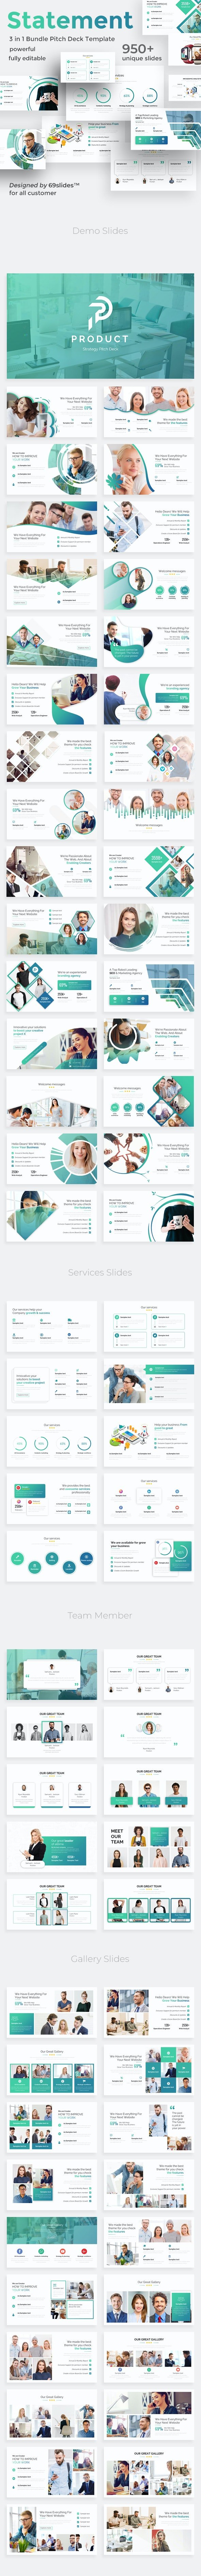 Value Statements 3 in 1 Pitch Deck Bundle Powerpoint Template - Business PowerPoint Templates